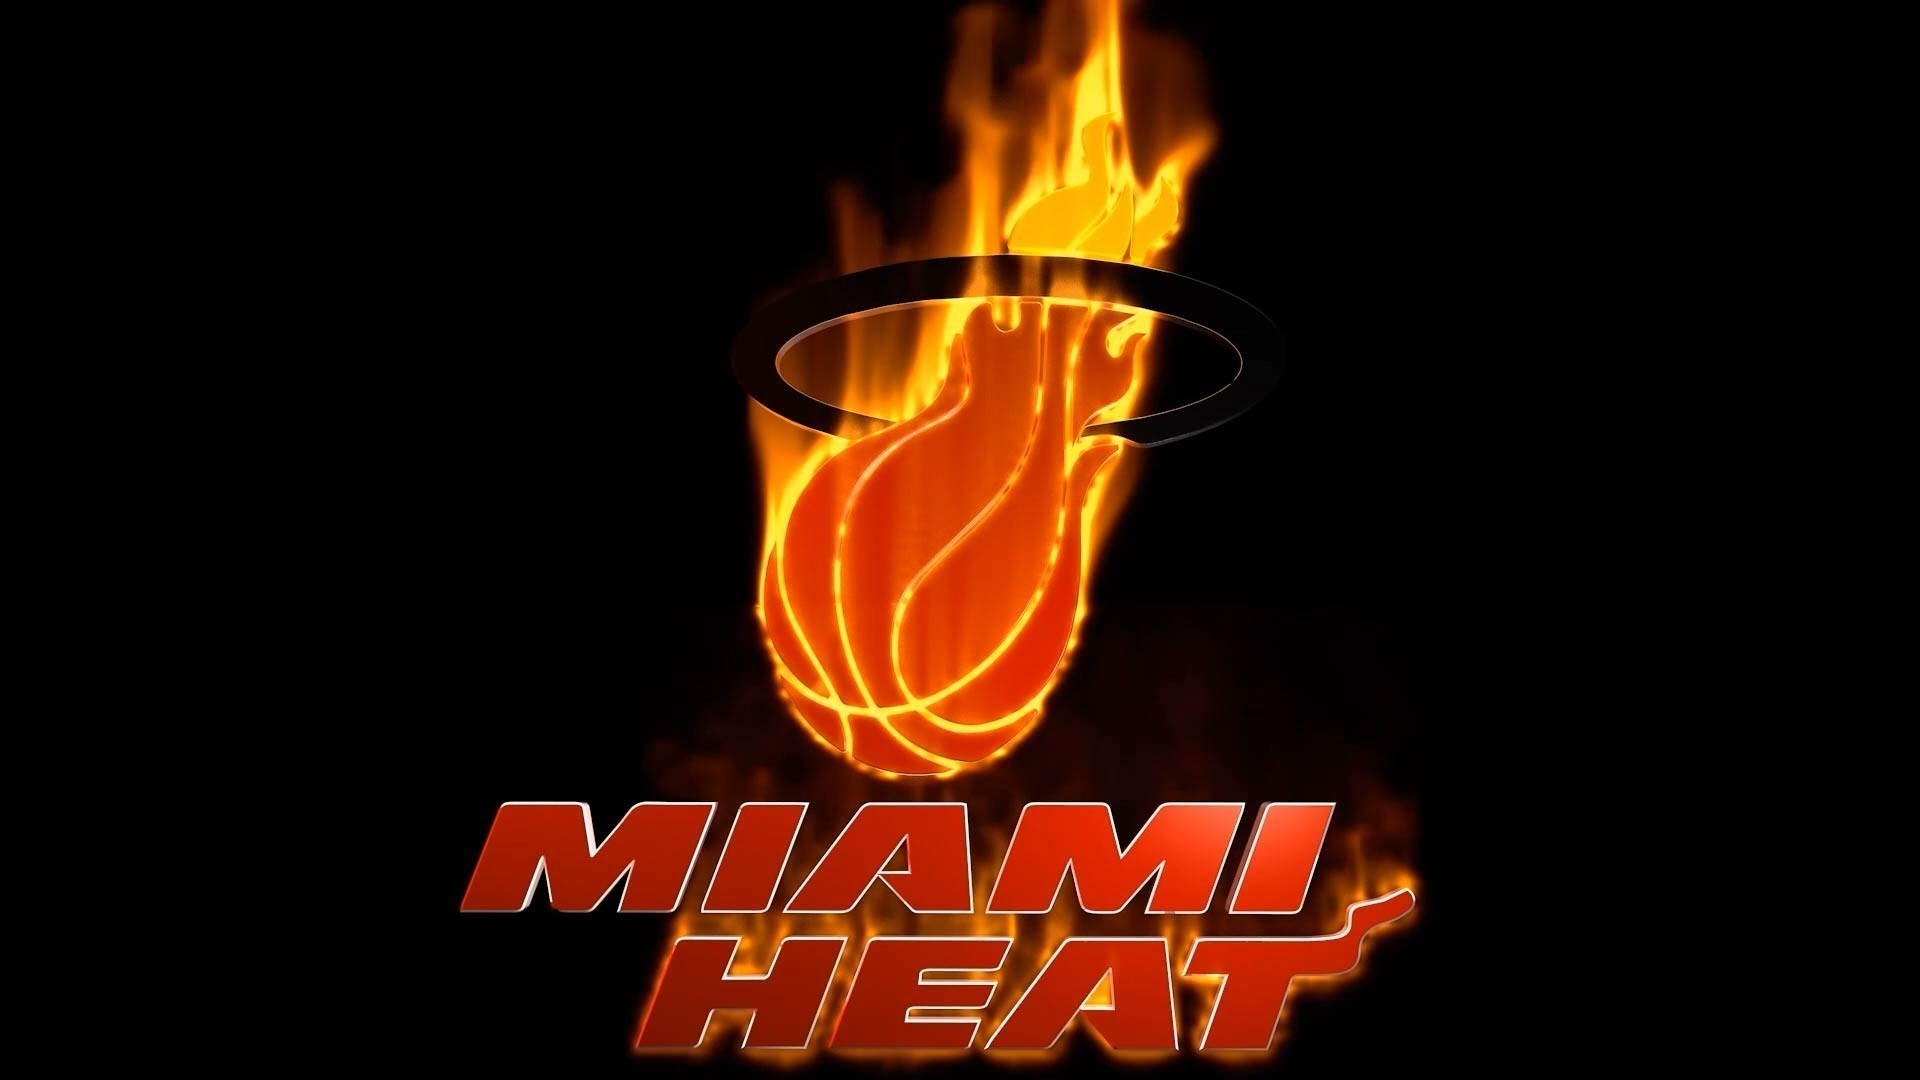 1920x1080 HD Desktop Wallpaper Miami Heat with high-resolution  pixel. You  can use this